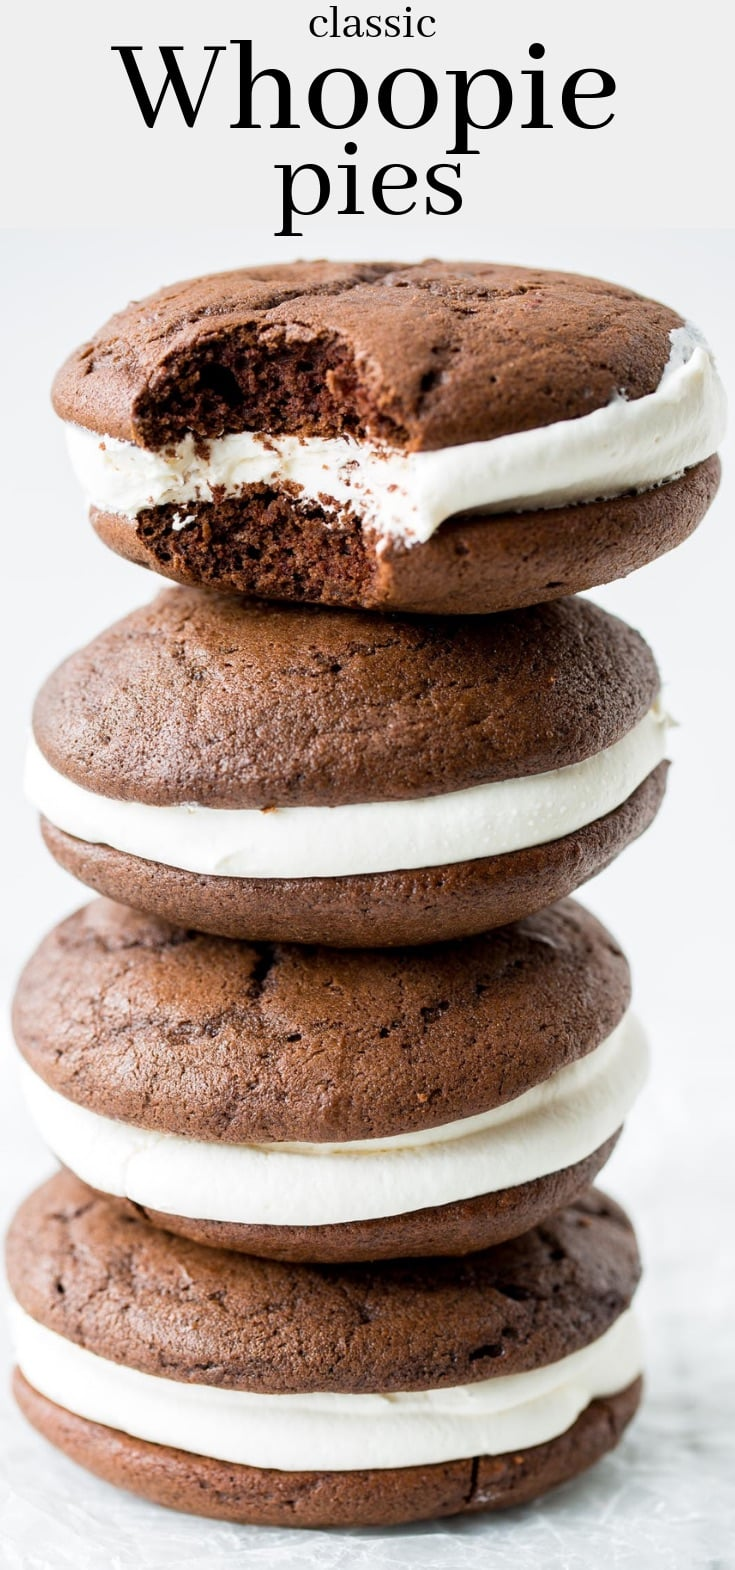 Classic Whoopie Pies ~ Chocolate cake-like batter is baked into large, soft hamburger bun shaped cookies filled with a fluffy, sweet marshmallow frosting. #whoopiepie #chocolatecookie #cookie #softcookie #marshmallowcream #marshmallowfrosting #dessert #chocolatewhoopiepies